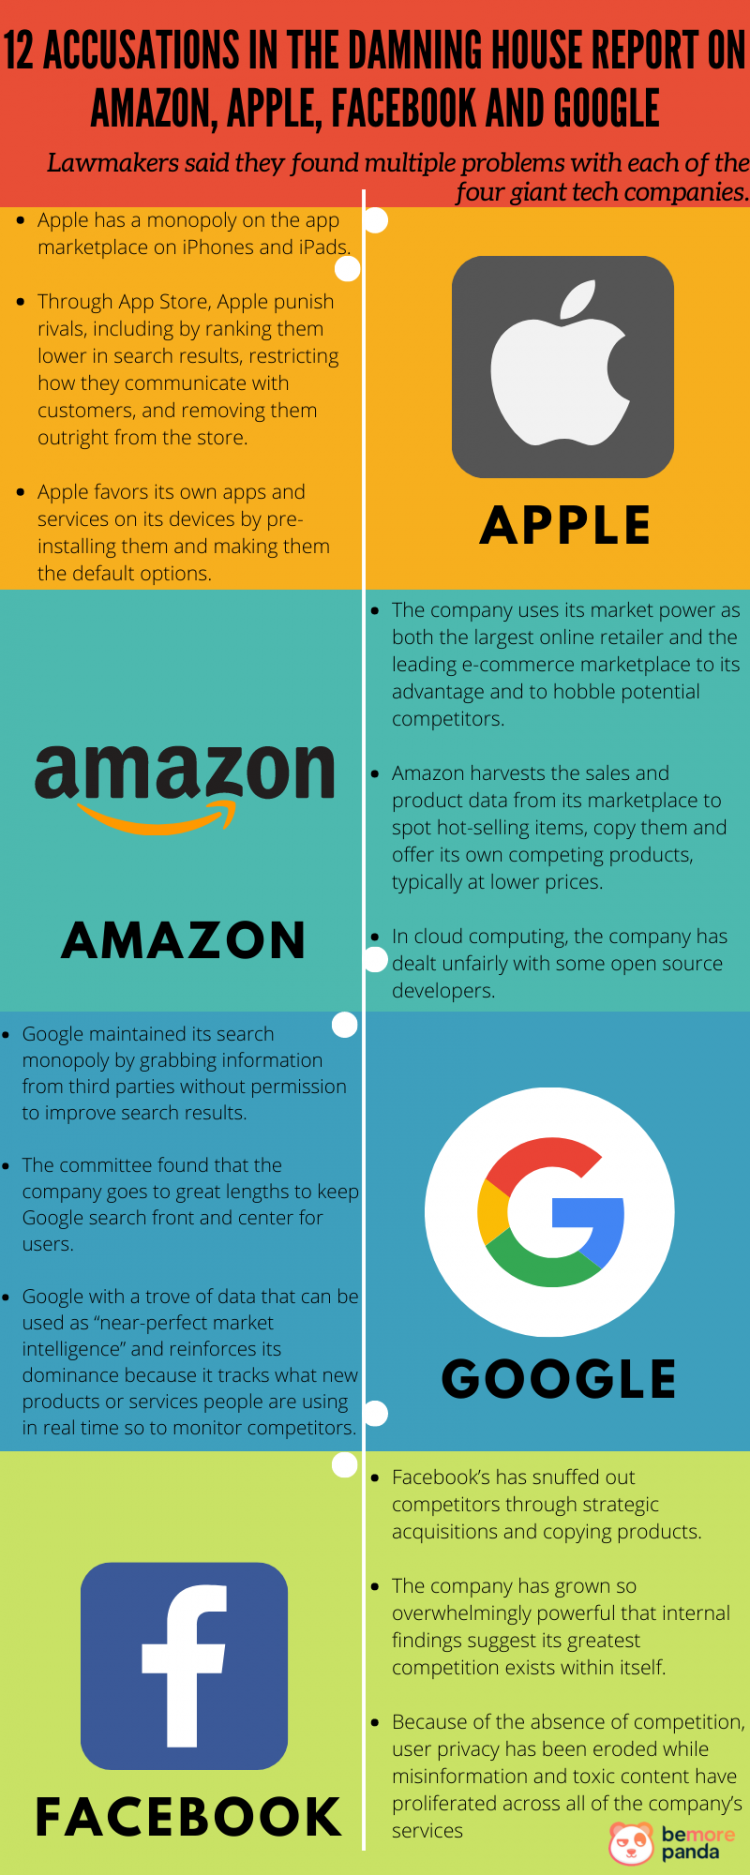 lawmakers-prepared-12-accusations-for-amazon-apple-facebook-and-google